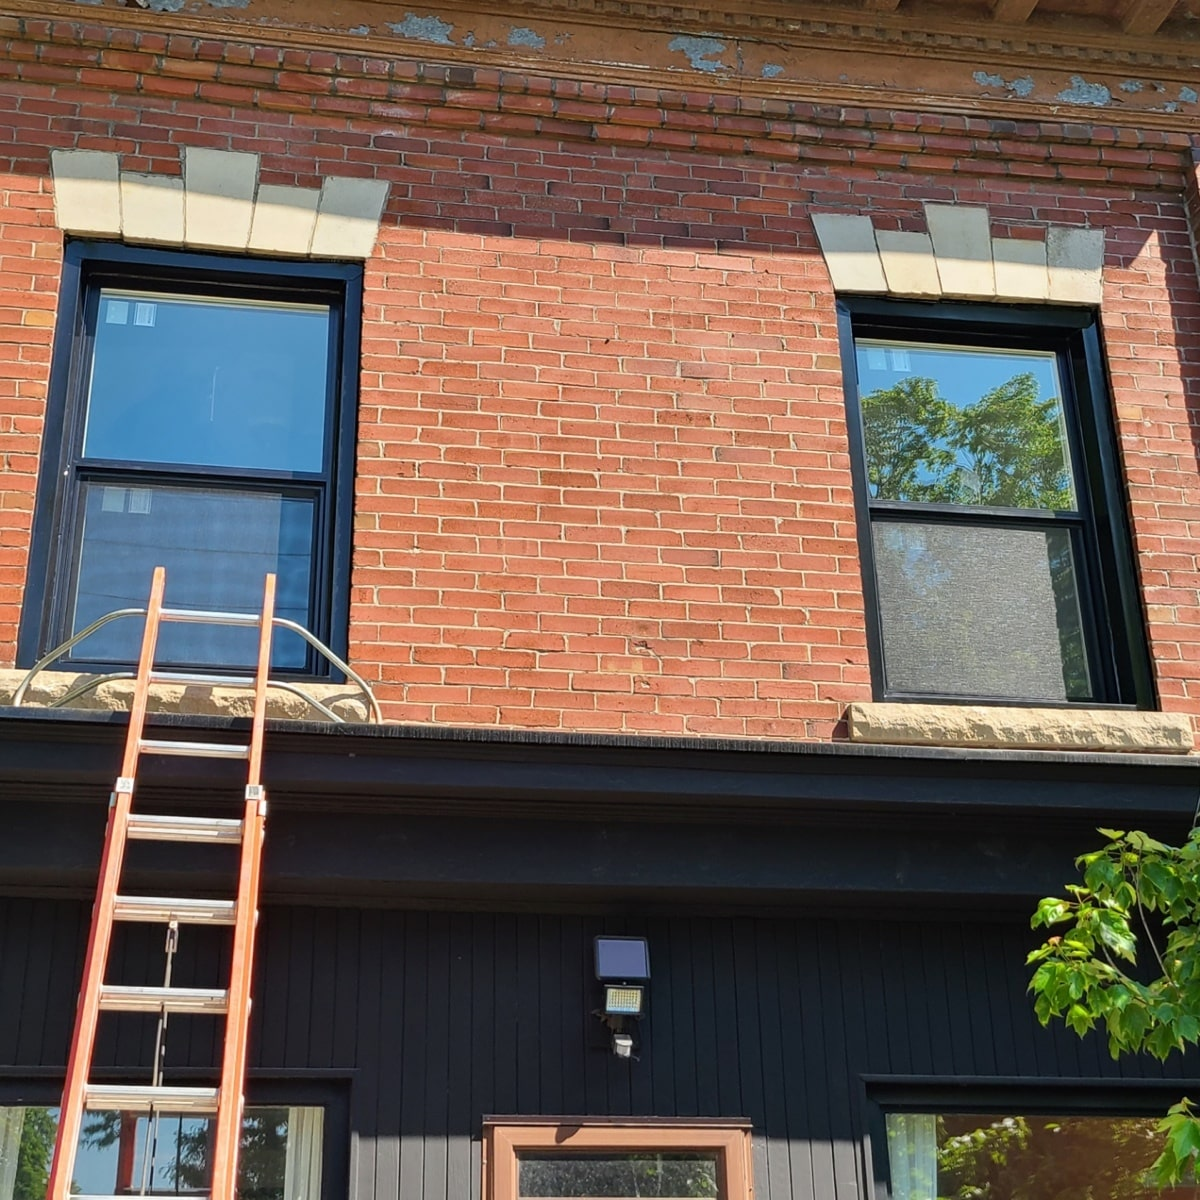 Window replacement in Toronto